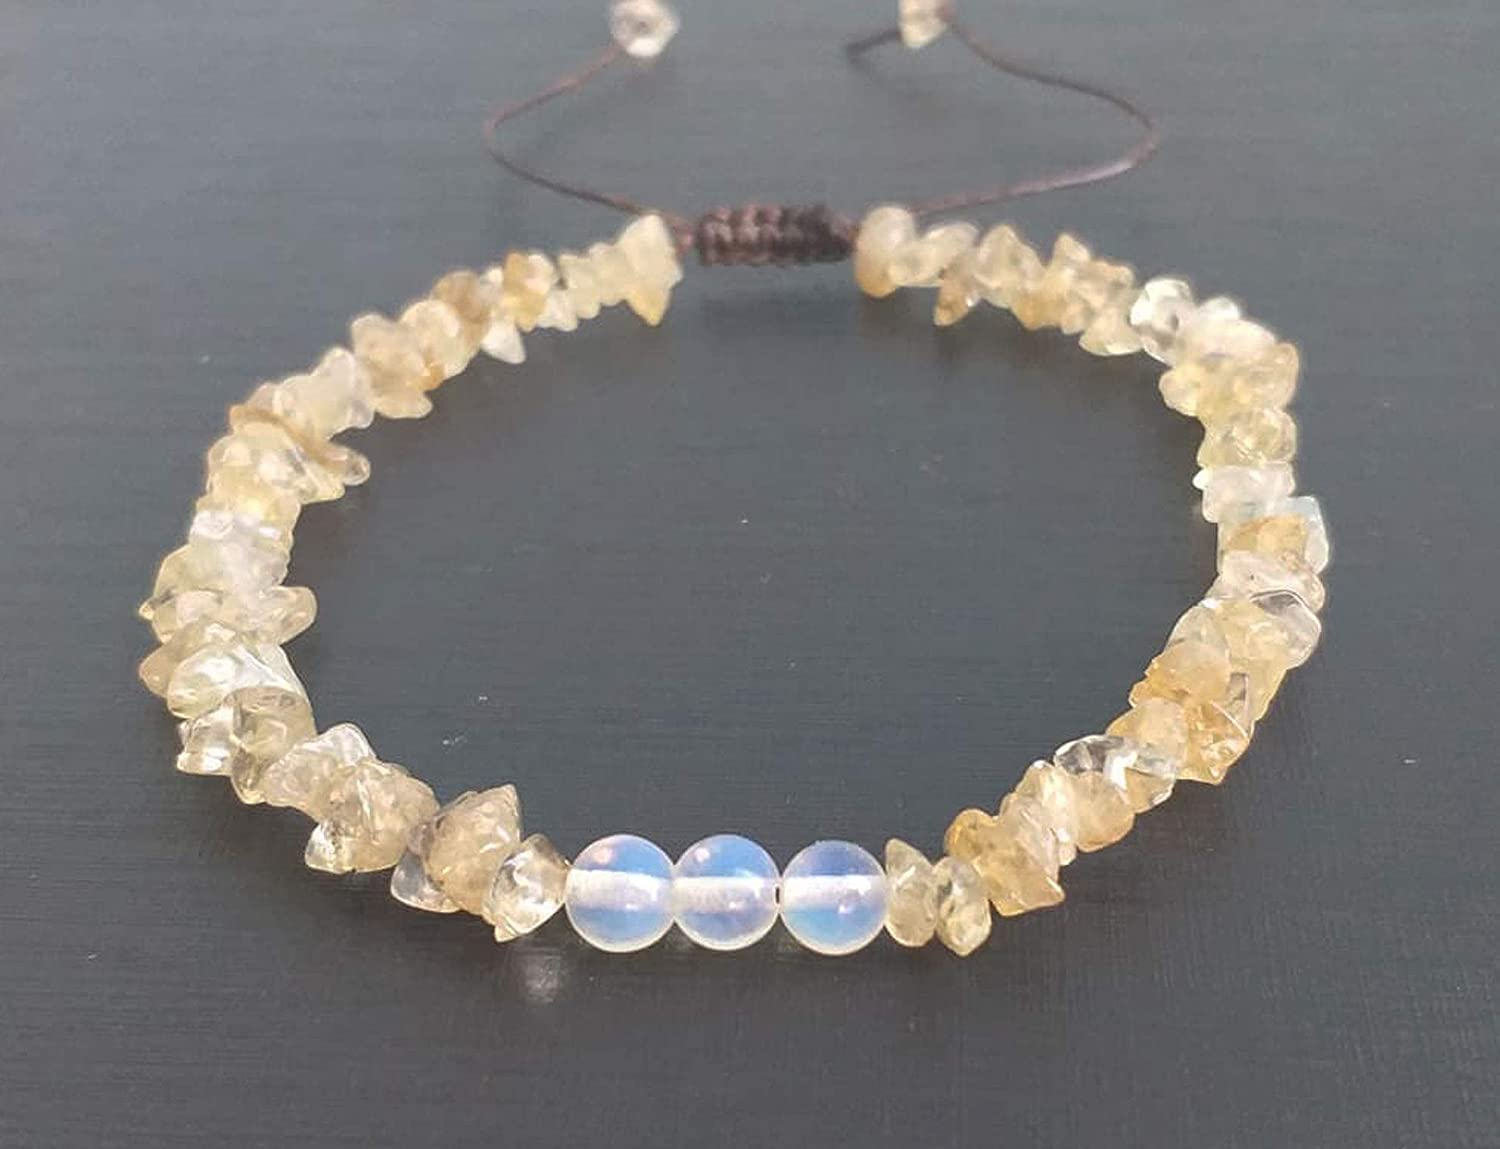 Citrine stone anklets opal anklets yellow anklets white anklets gemstone anklets friendship anklets beaded anklets men women